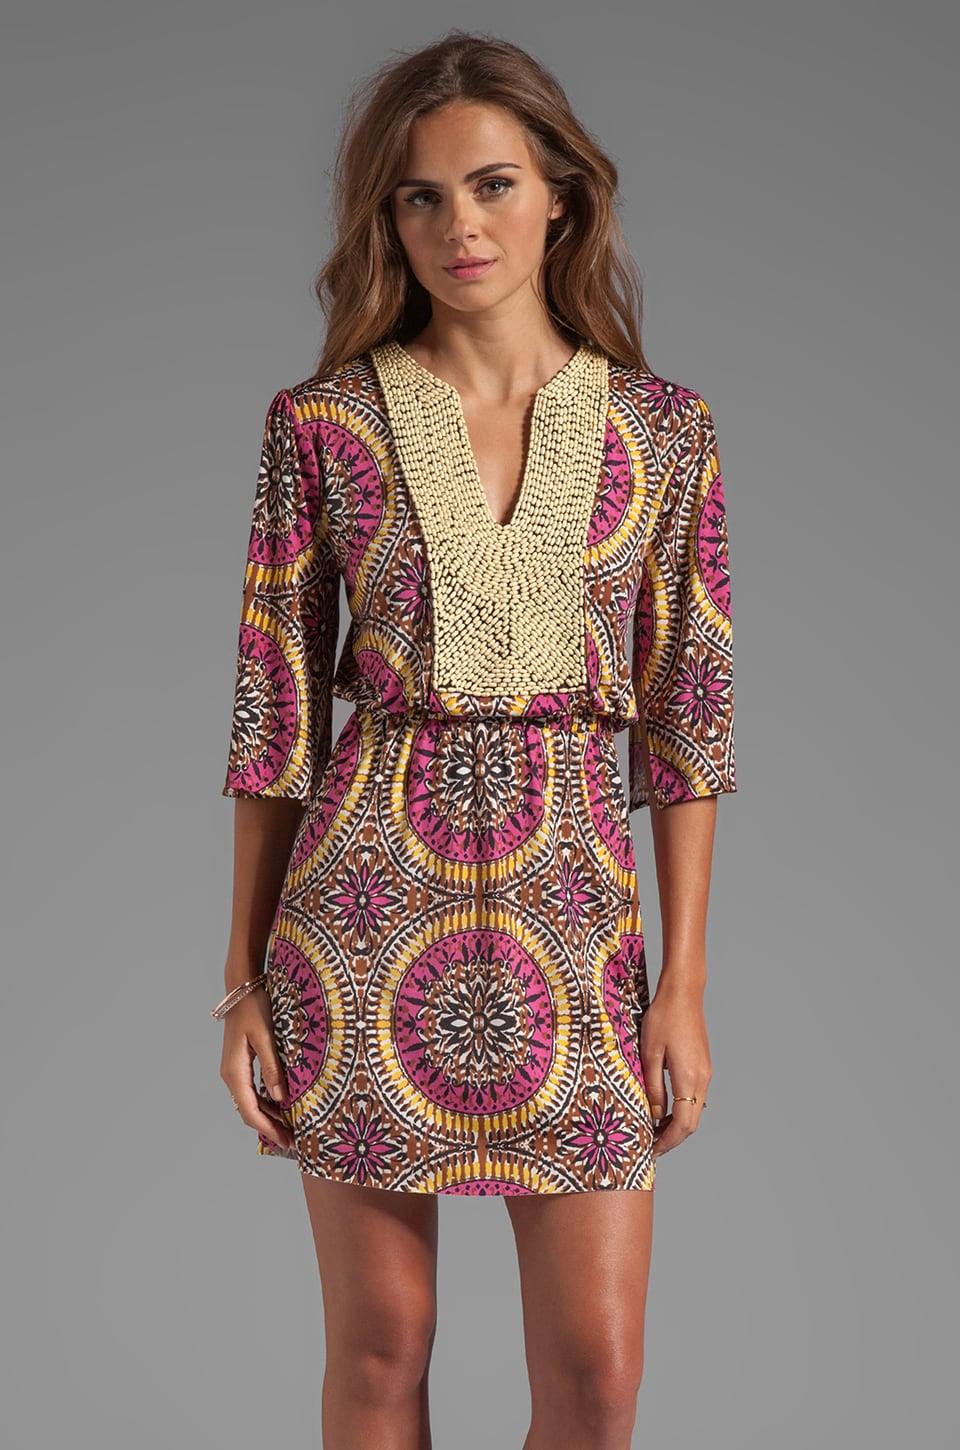 T-Bags LosAngeles Mini Caftan Dress in Warm Medallion